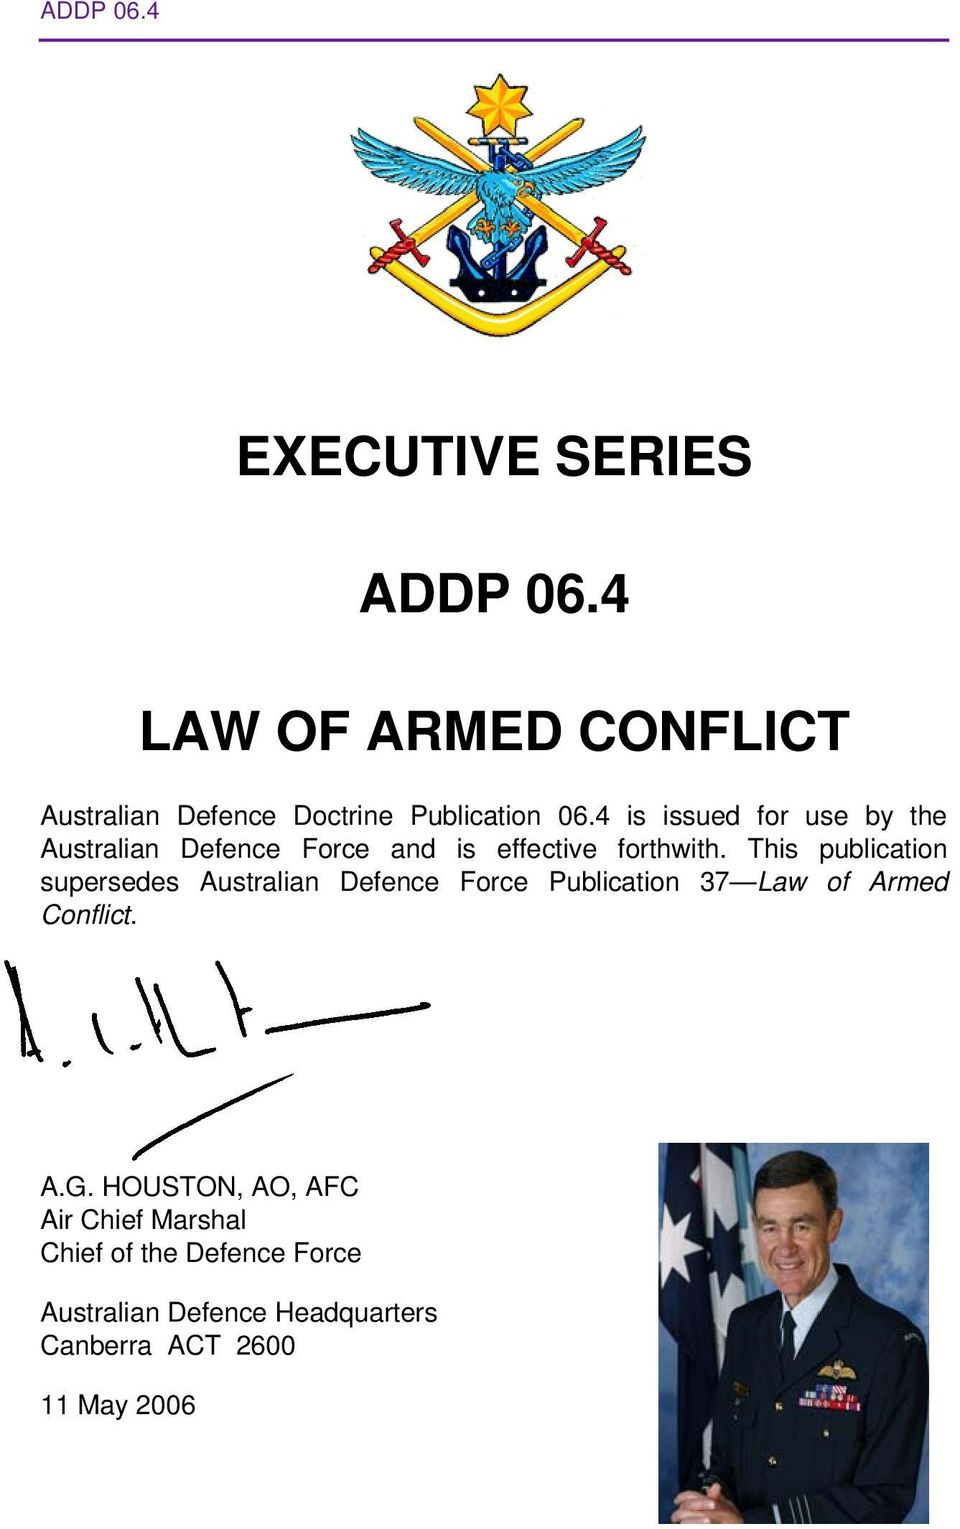 4 is issued for use by the Australian Defence Force and is effective forthwith.